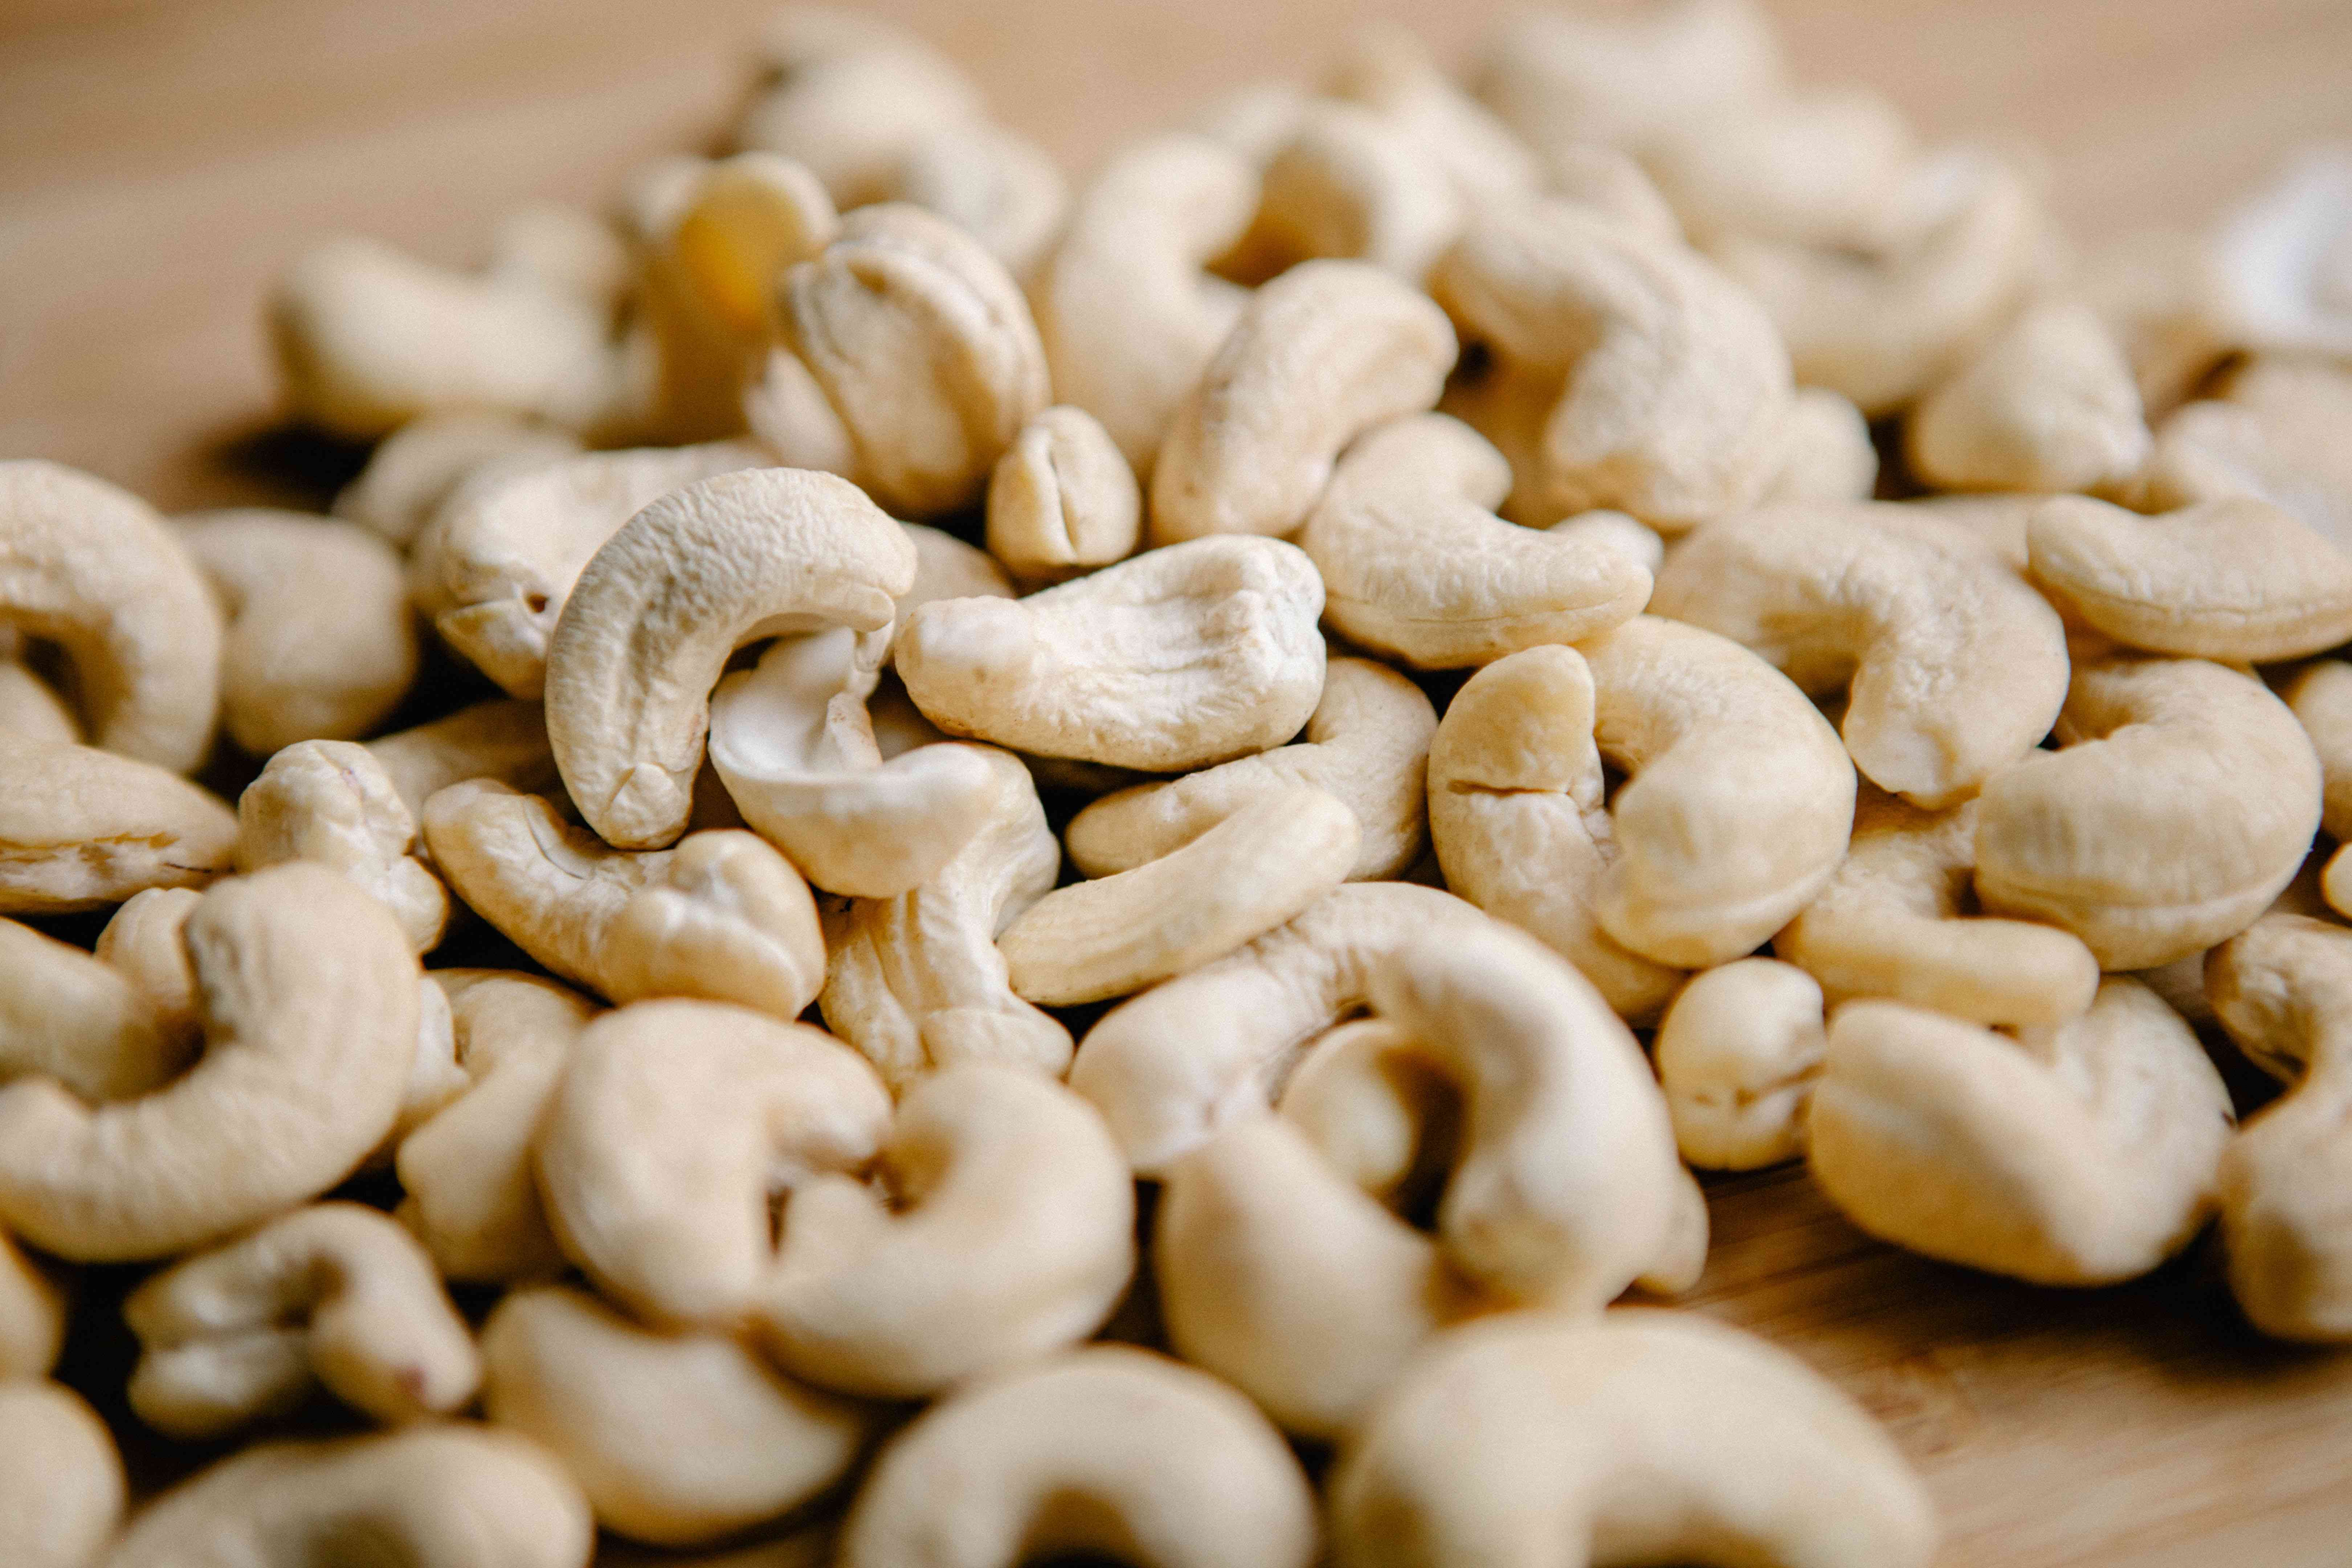 raw cashew nuts on wooden table up close